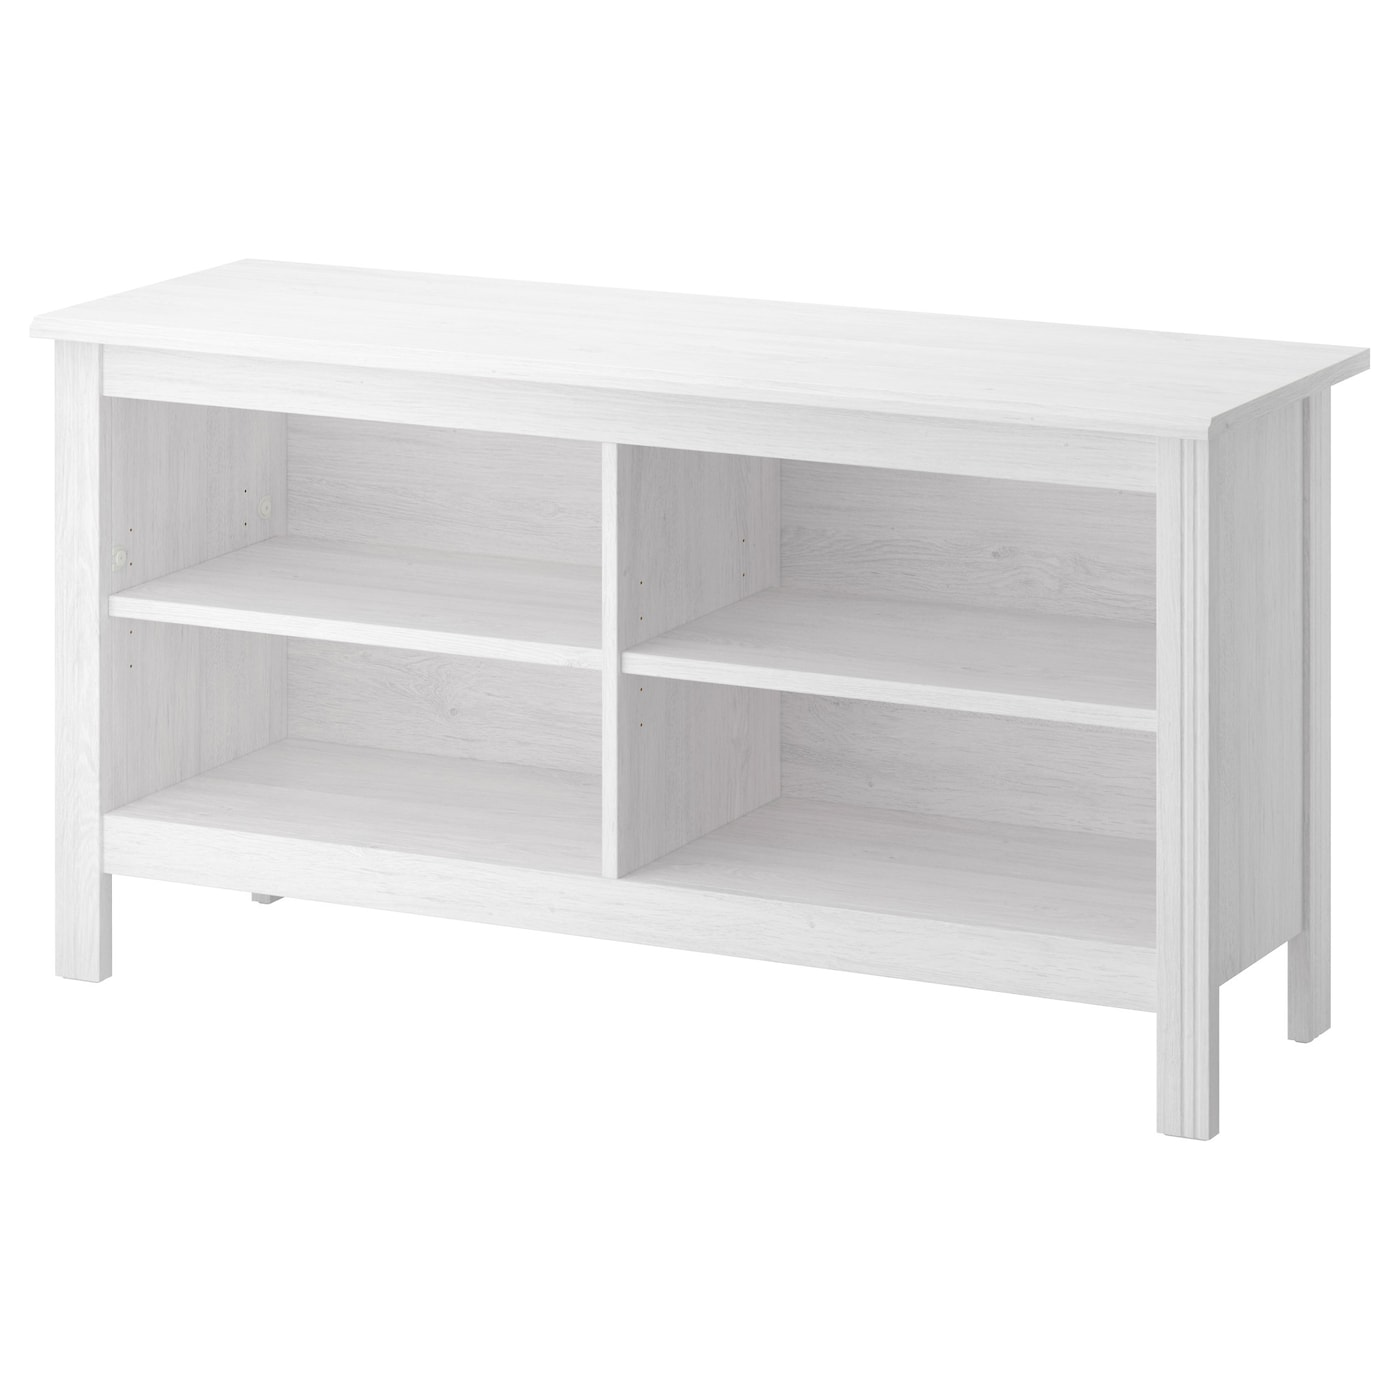 brusali tv bench white 120x62 cm ikea. Black Bedroom Furniture Sets. Home Design Ideas